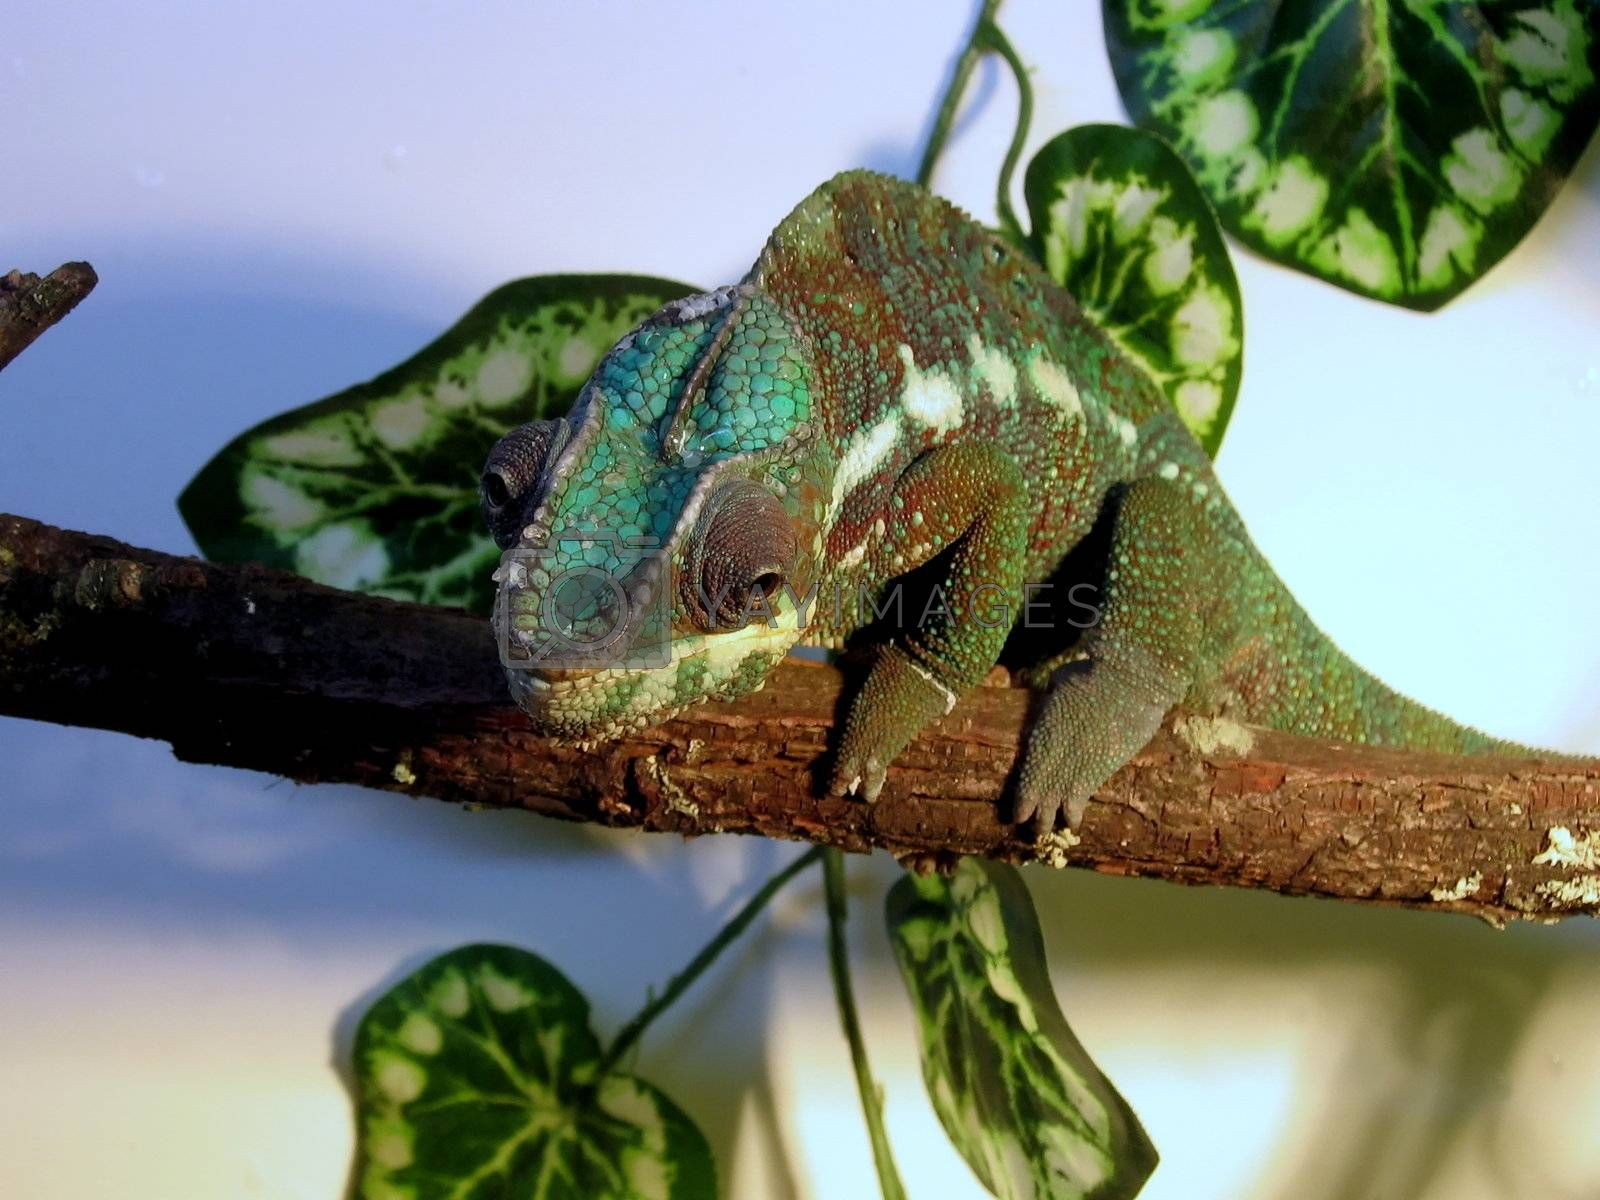 Colored cute chameleon sits on the branch